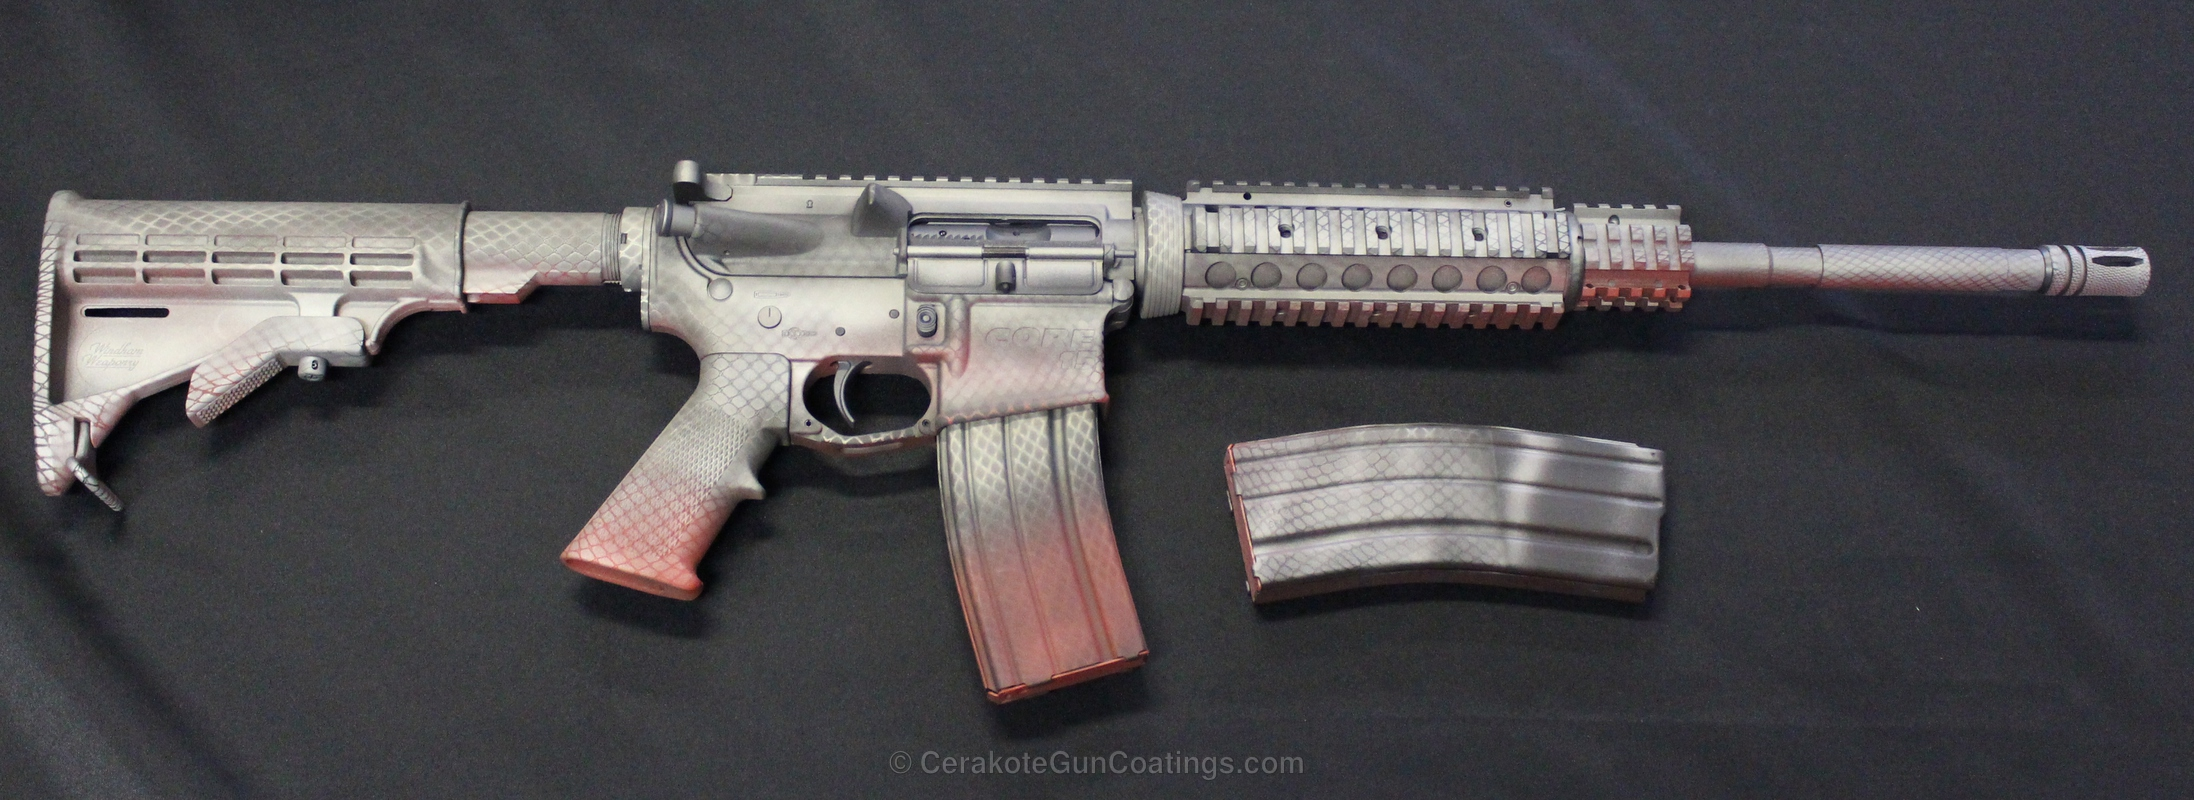 Cerakoted H-255 Crushed Silver With H-216 Smith & Wesson Red And C-110 Micro Slick